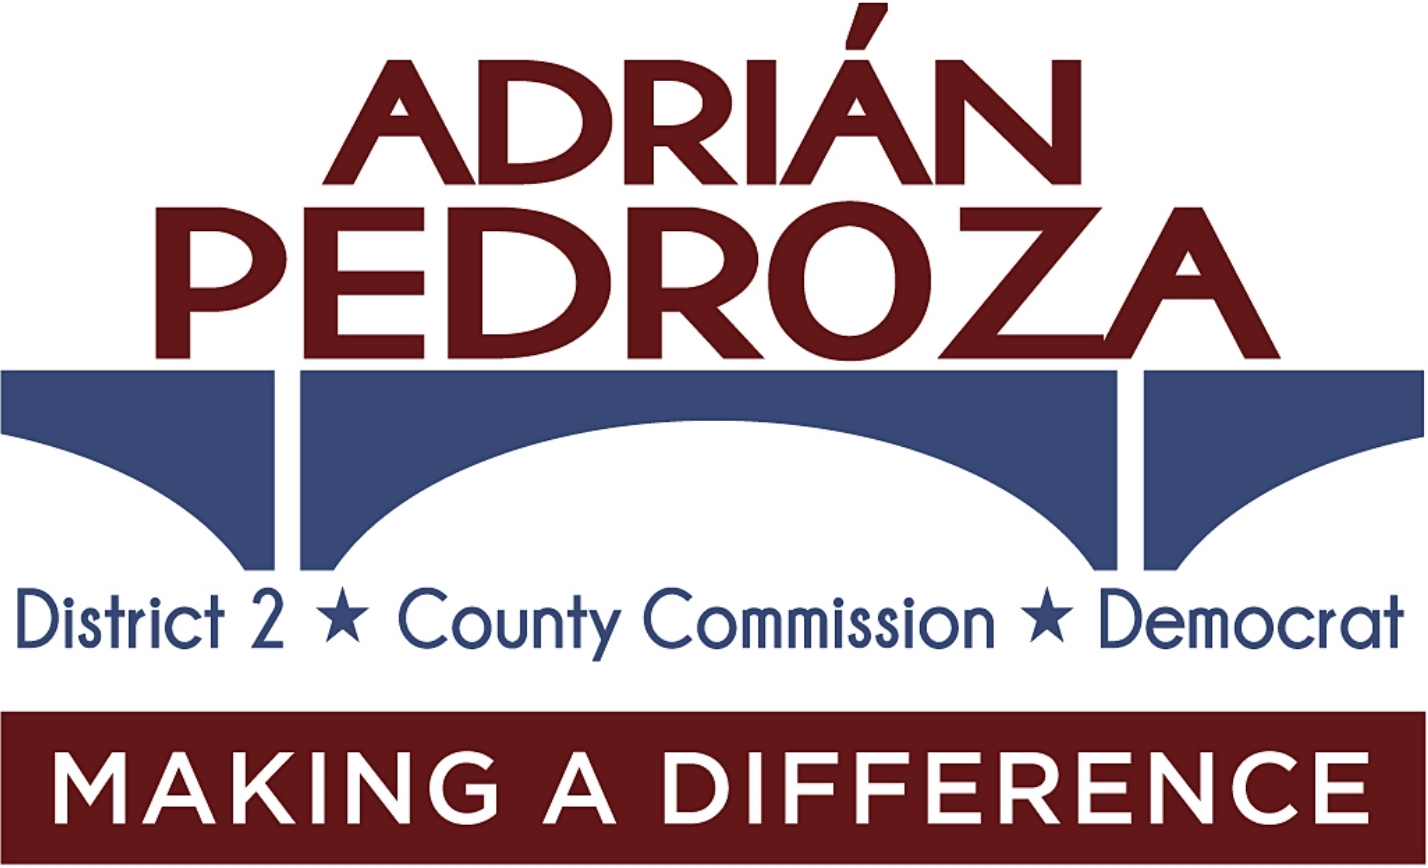 Adrián Pedroza for County Commission